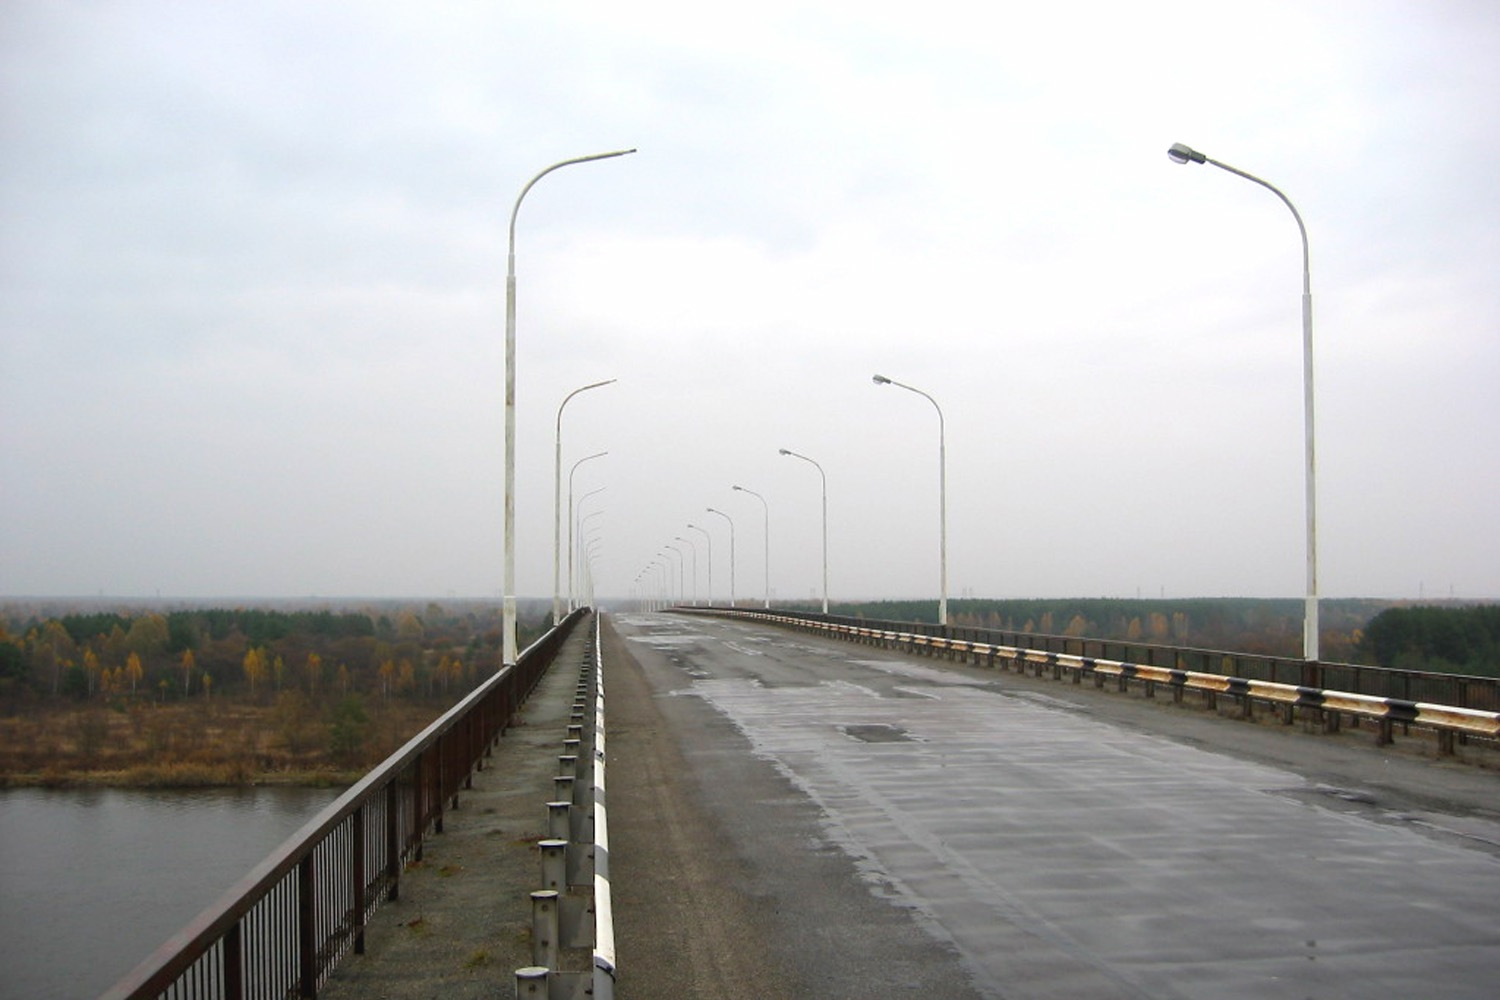 Chernobyl Pripyat Bridge